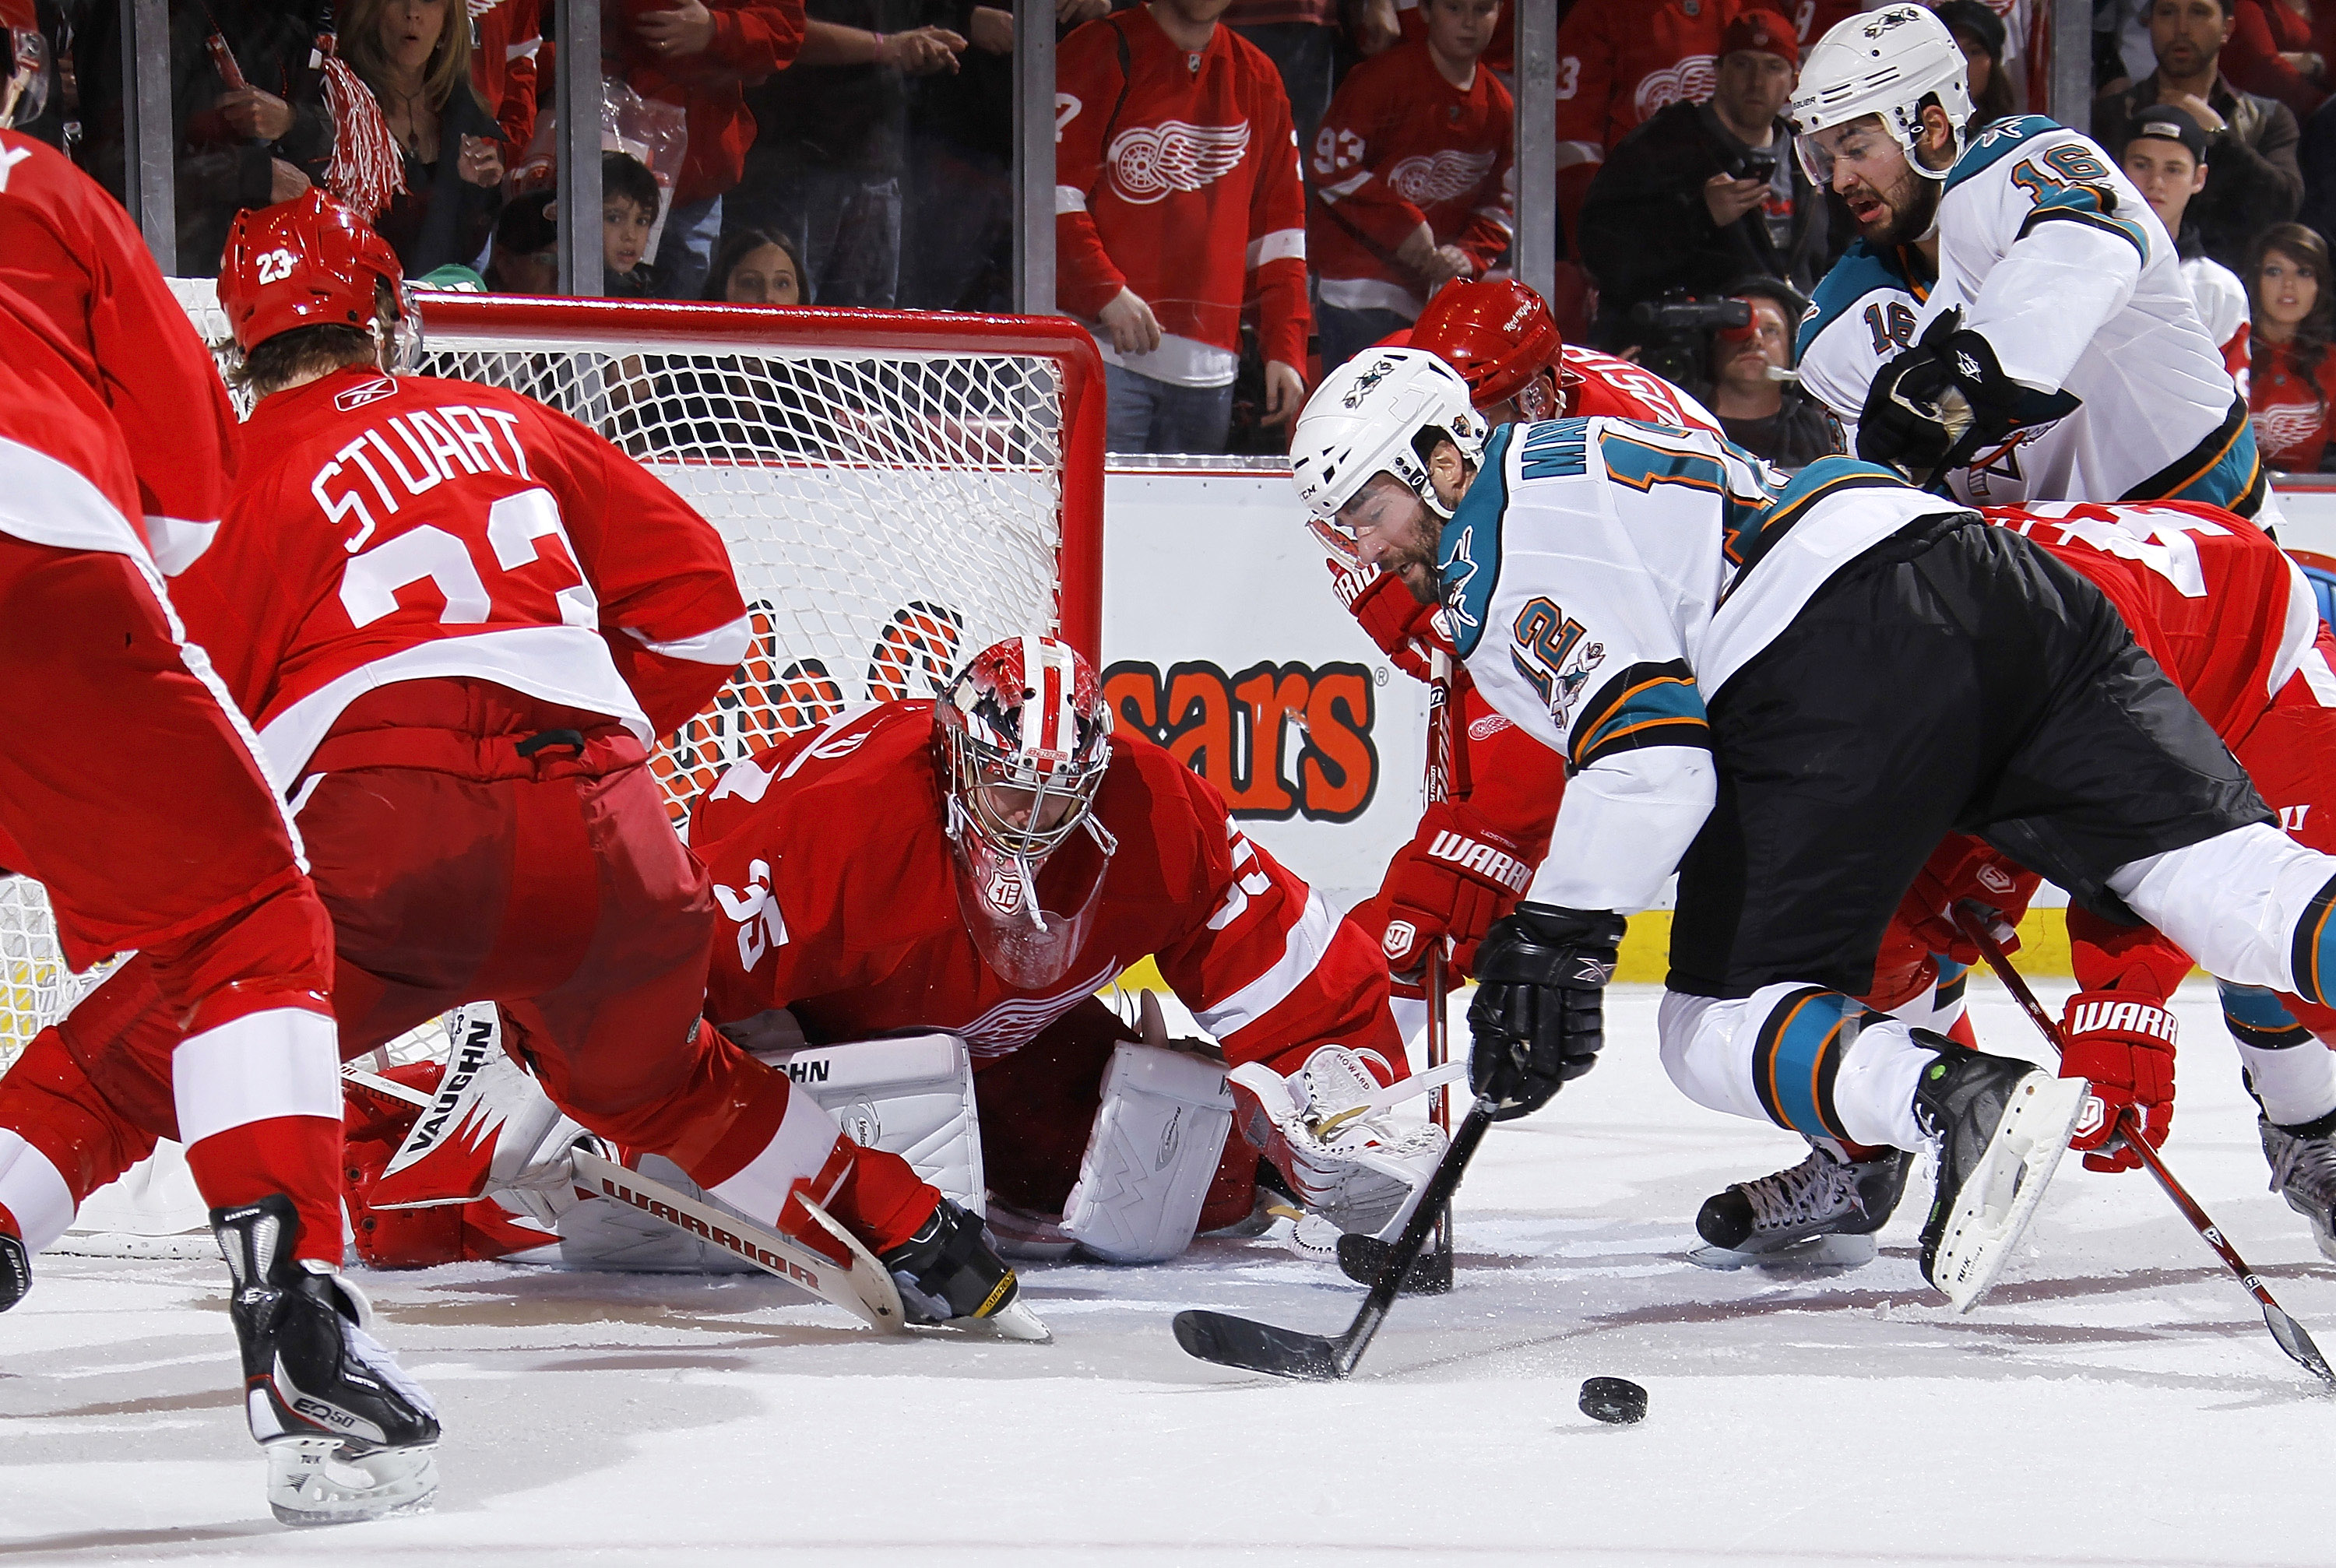 DETROIT - MAY 6: Patrick Marleau #12 of the San Jose Sharks can't get a shot off in front of Jimmy Howard #35 of the Detroit Red Wings during the third period in Game Four of the Western Conference Semifinals during the 2011 NHL Stanley Cup Playoffs on Ma